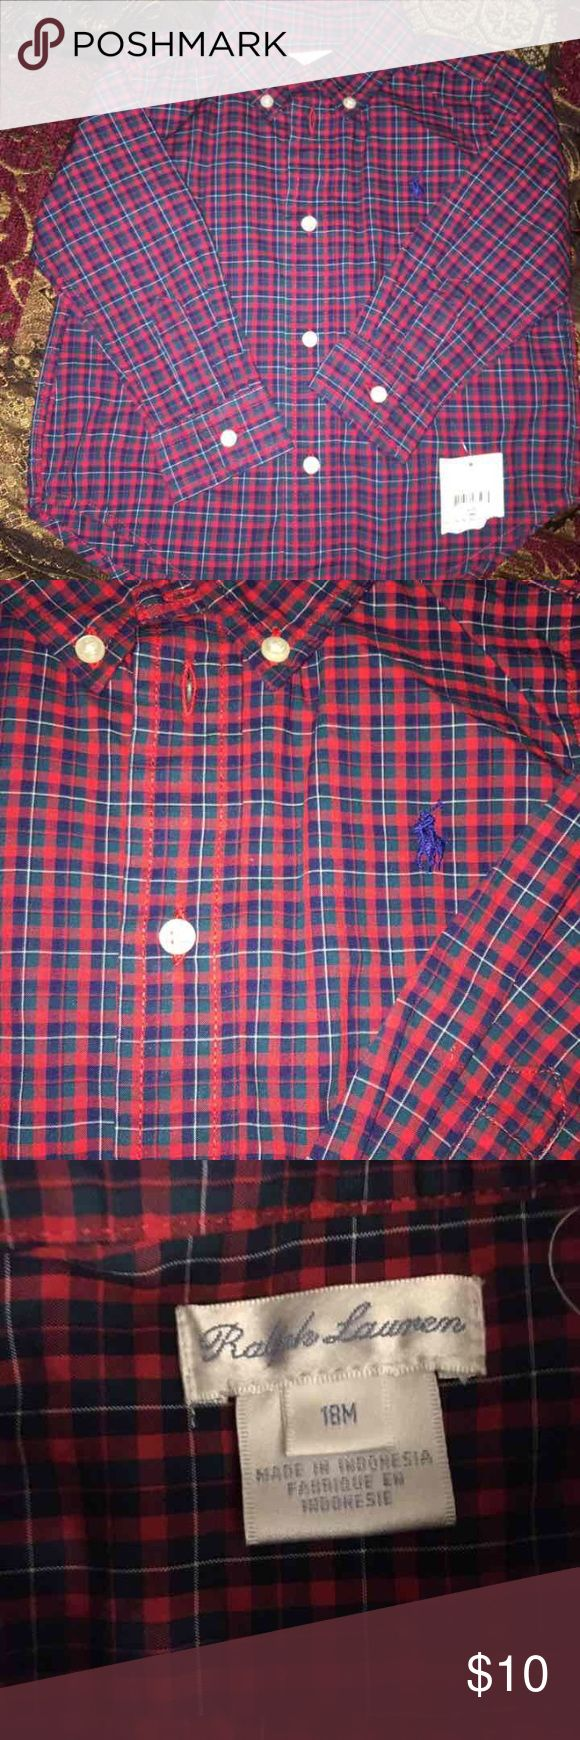 Baby Boy Ralp Lauren Shirt New worn Plaid Ralph Lauren Shirts & Tops Button Down Shirts